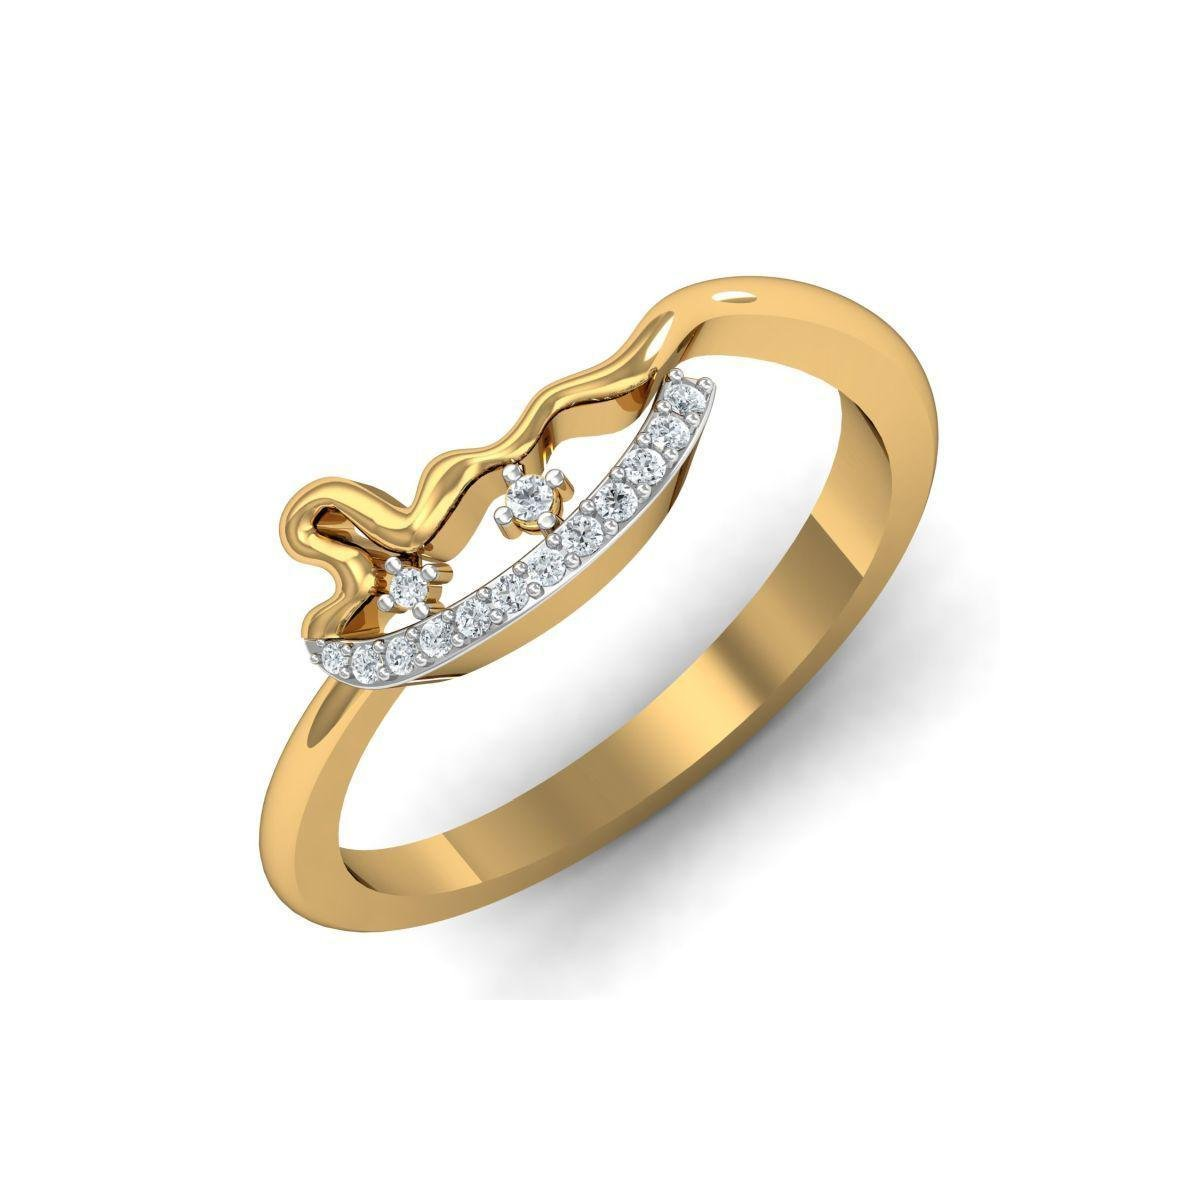 Diamoire Jewels 18kt Yellow Gold Pave 0.08ct Diamond Infinity Ring - UK G 1/4 - US 3 1/2 - EU 45 3/4 nn6mQW